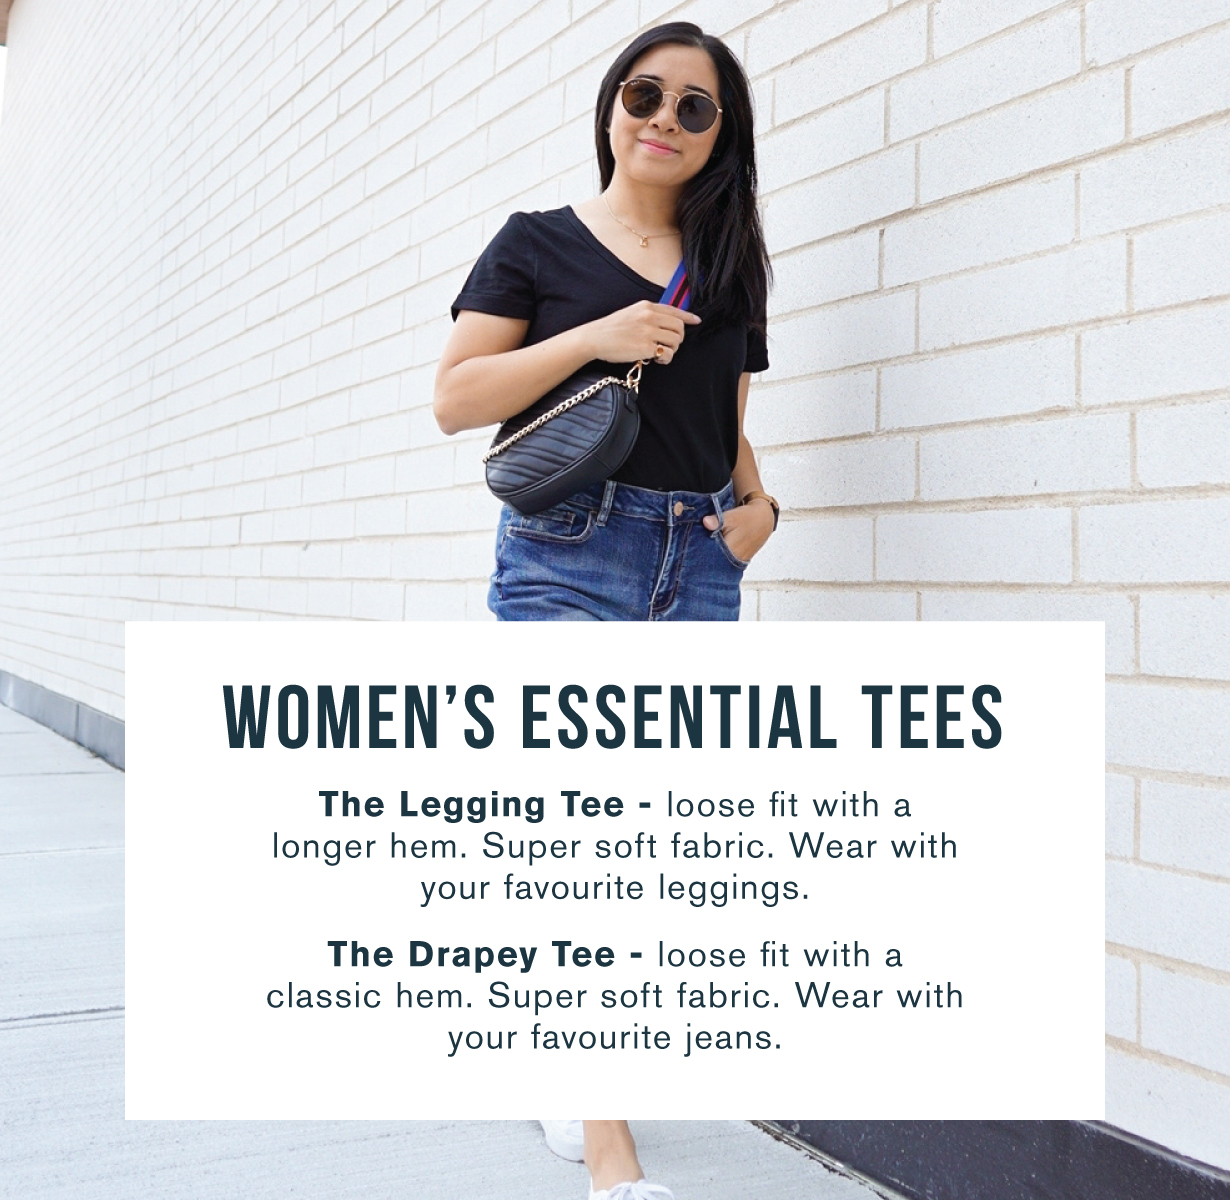 Women's essential tees. The legging tee - loose fit with a longer hem. Super soft fabric. Wear with your favourite leggings. The drapey tee - loose fit with a classic hem. Super soft fabric. Wear with your favourite jeans.